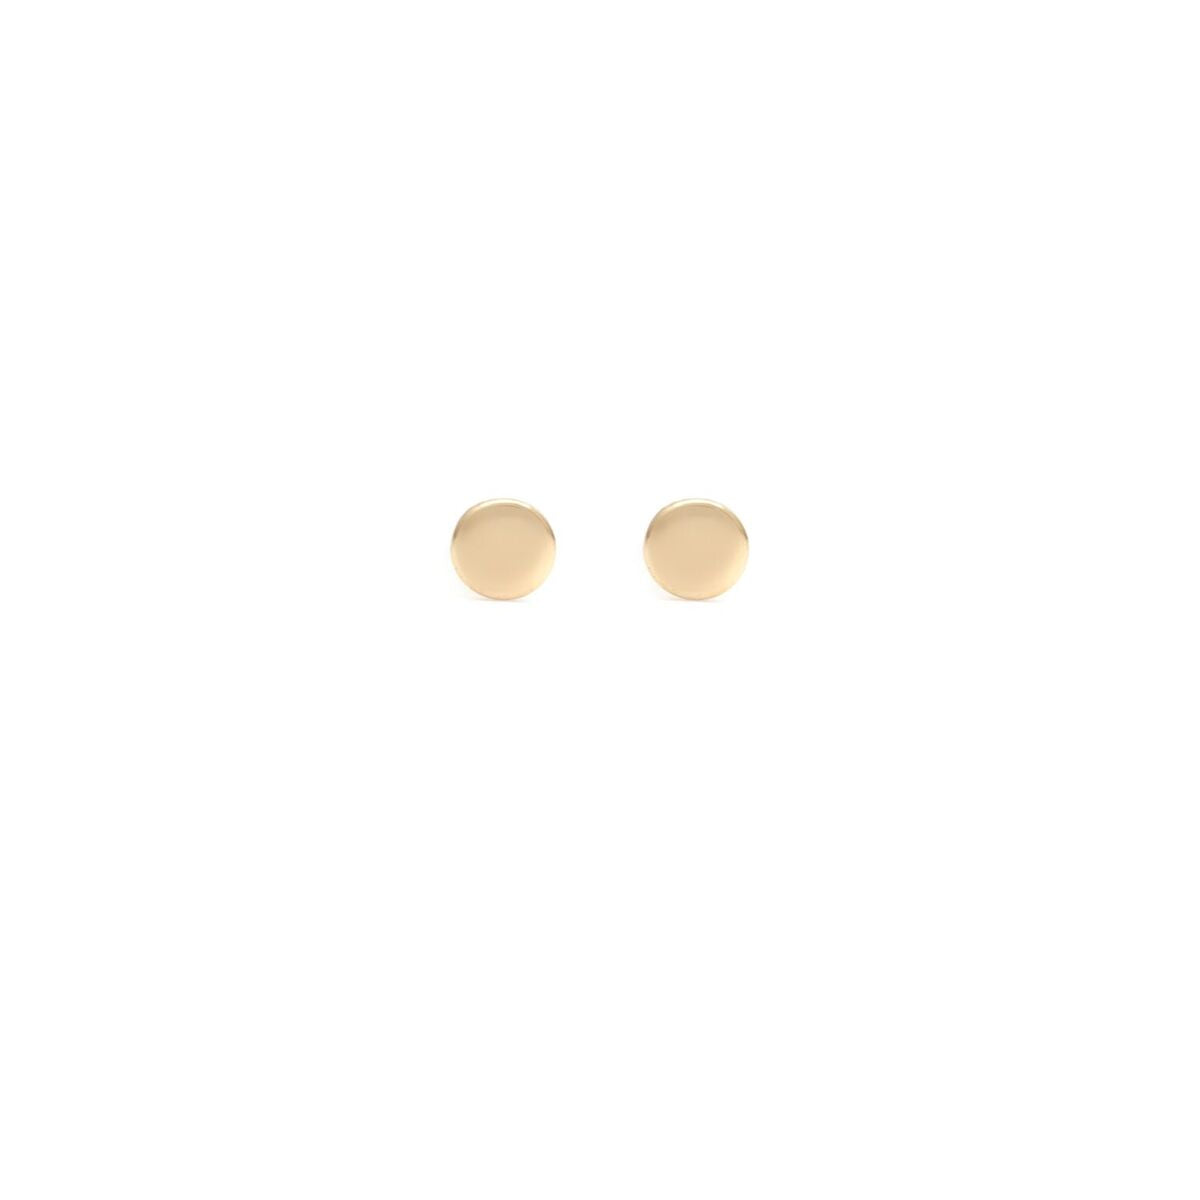 Disc Studs - 14k Solid Gold